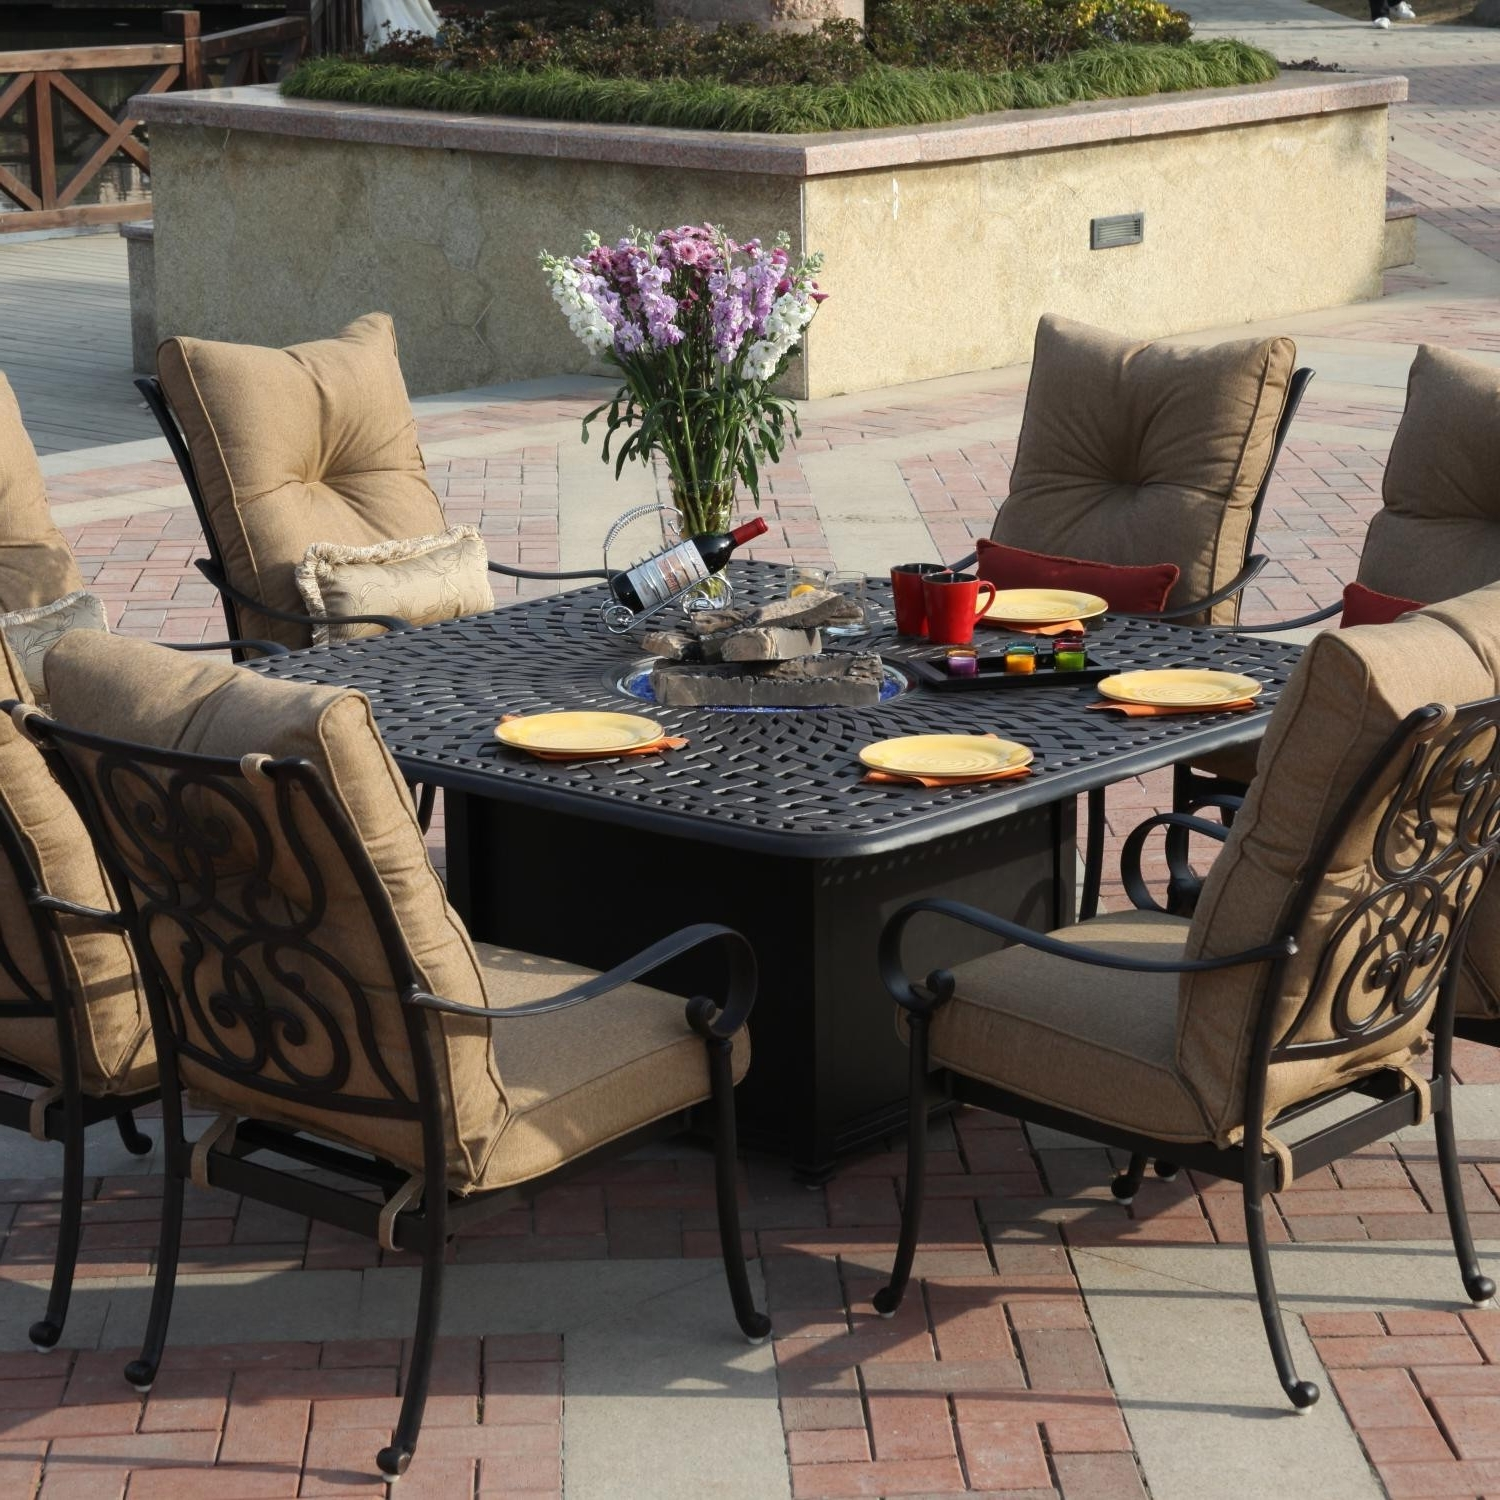 Patio Conversation Sets With Fire Pit Table Intended For Current New Wicker Patio Sets With Fire Pit Conversation Sets Fire Pit Table (View 10 of 20)